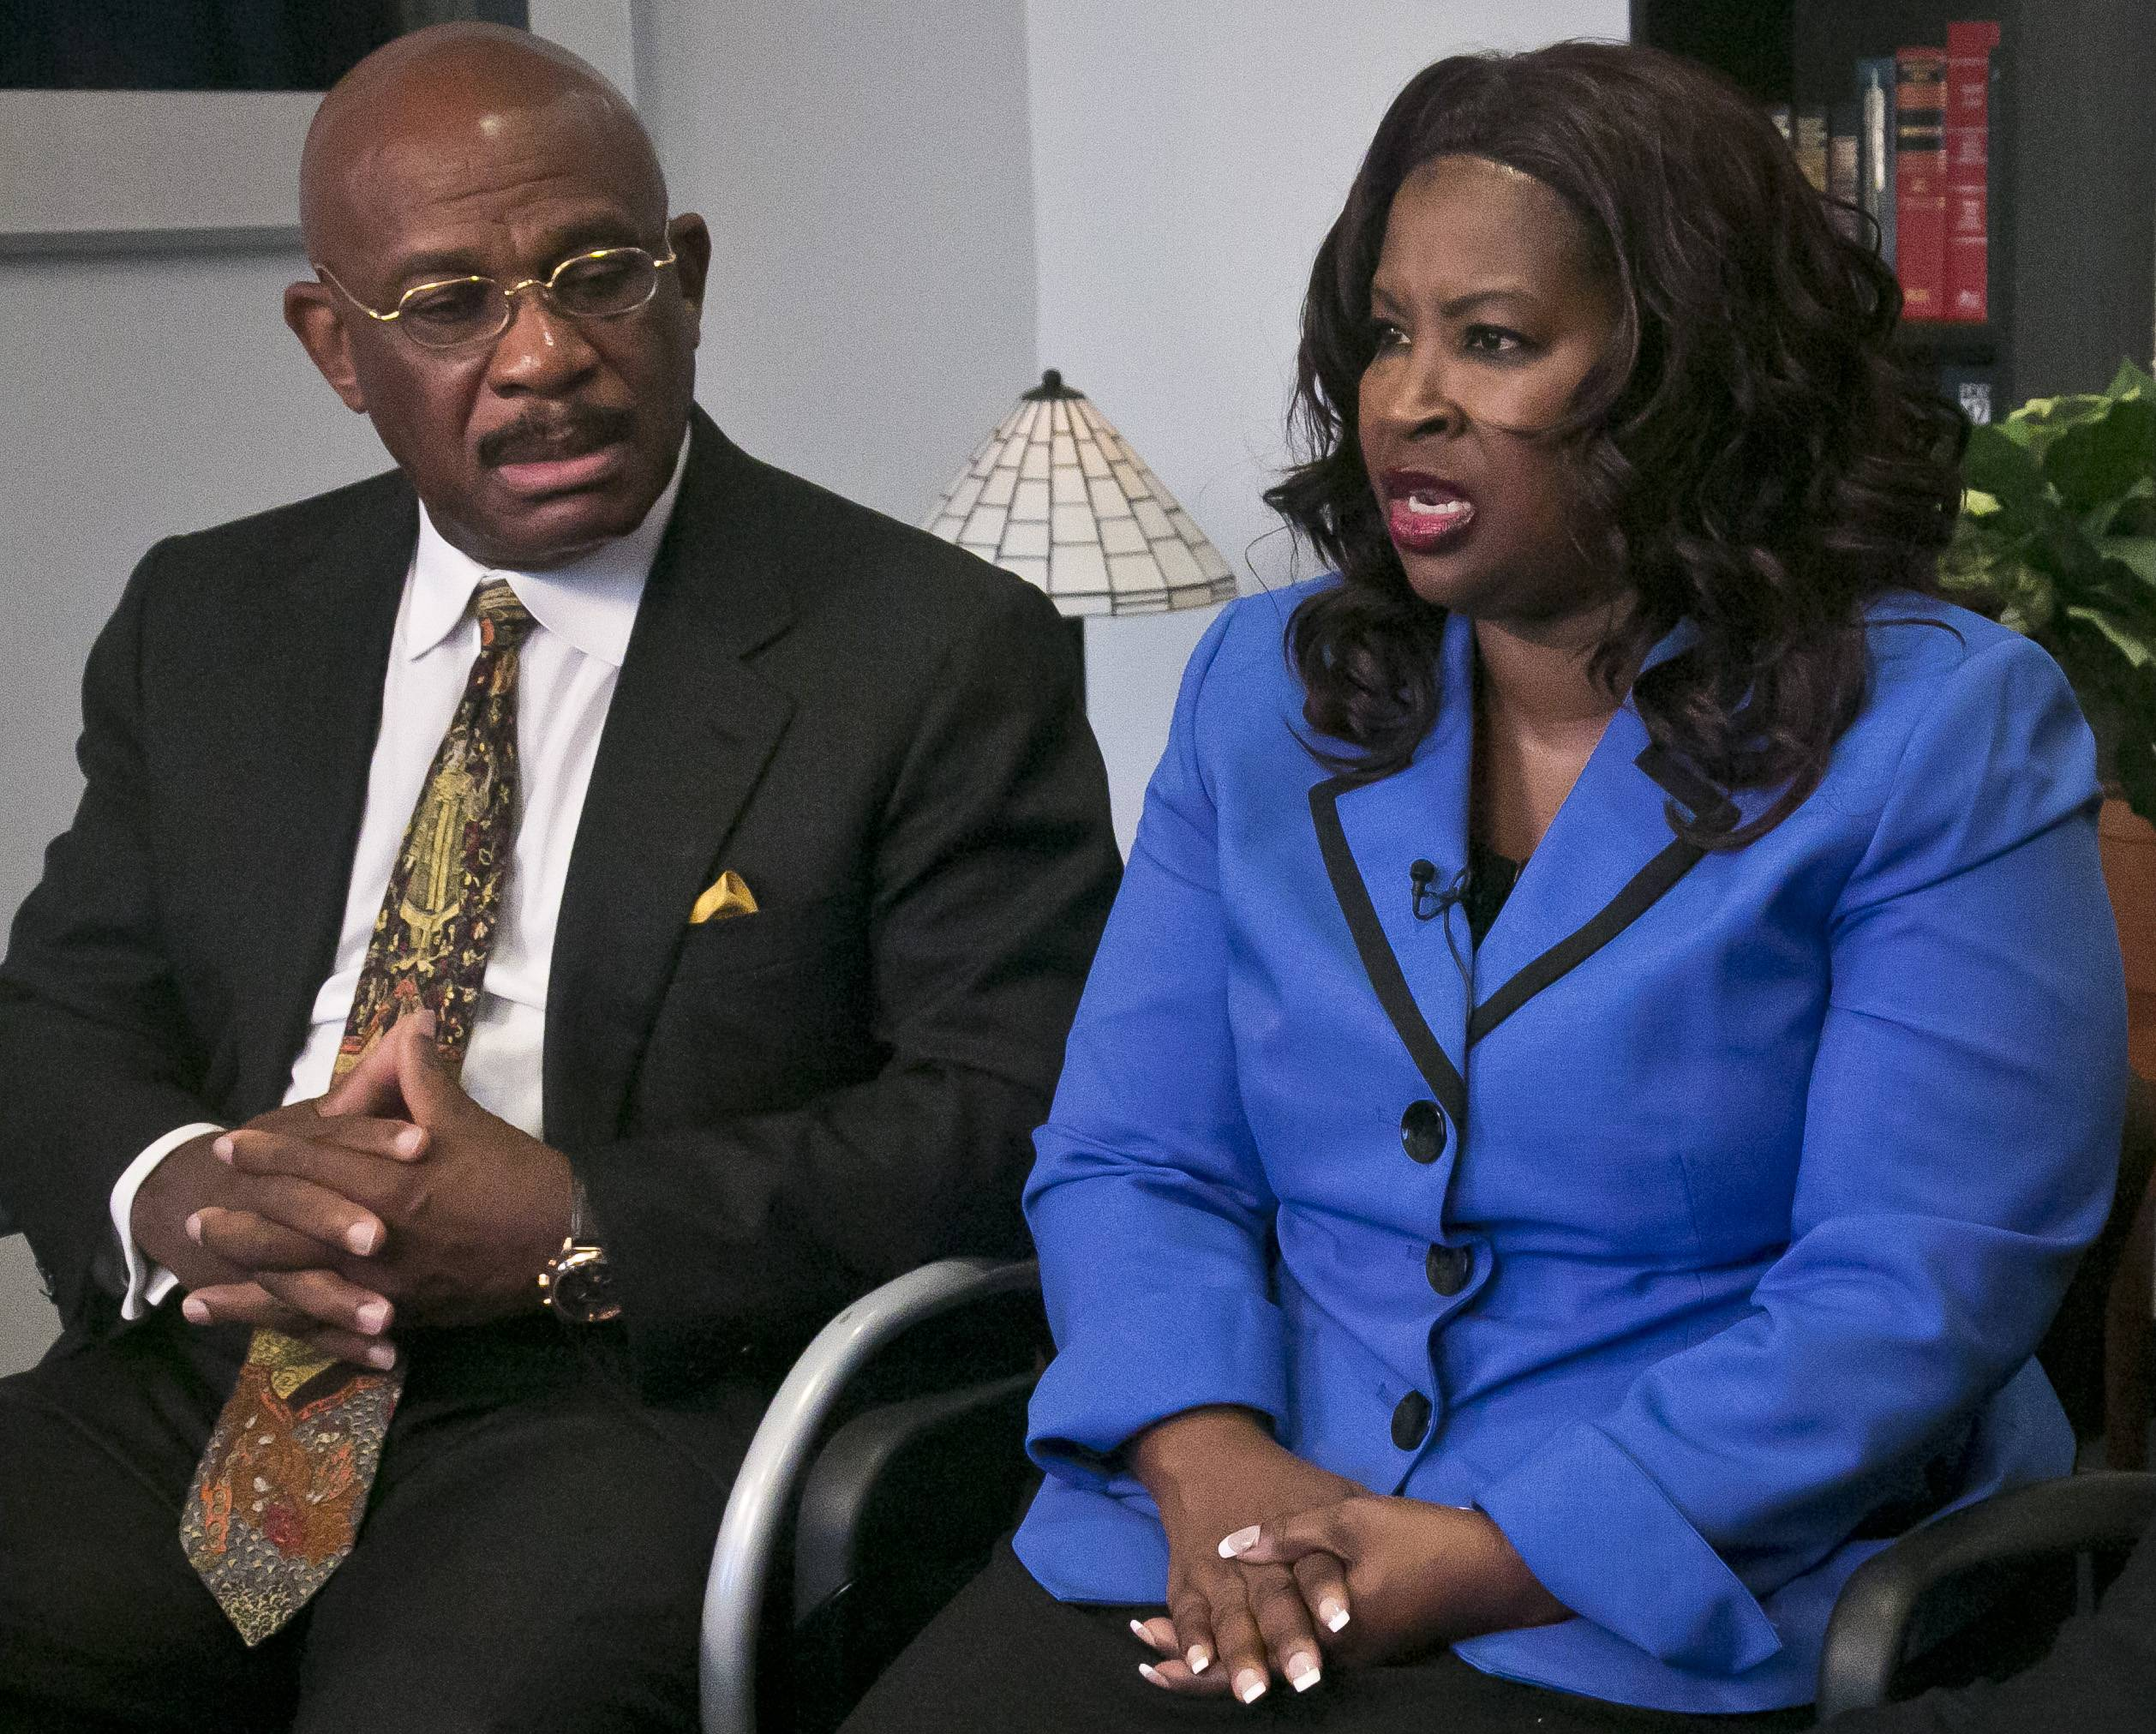 Attorney Willie Gary, left, listens as Cynthia Robinson speaks during an interview in New York. Gary represented Robinson in a lawsuit against R.J. Reynolds Tobacco Co.